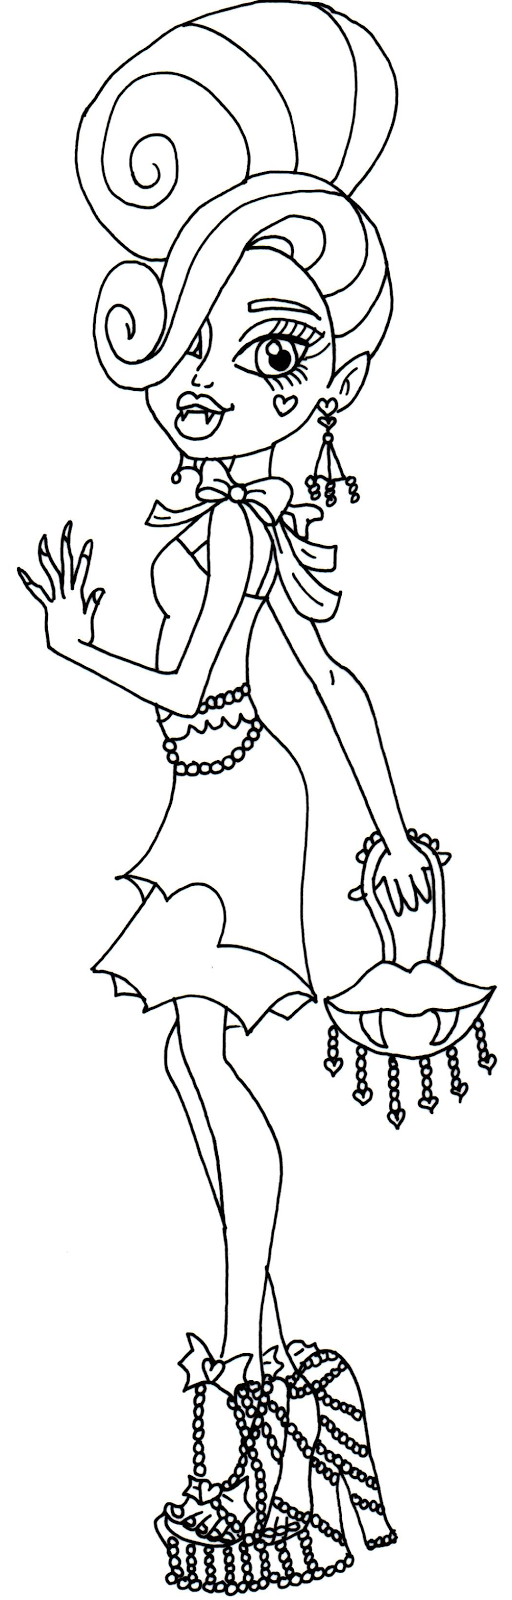 Free Printable Monster High Coloring Pages: Draculaura Black Carpet ...